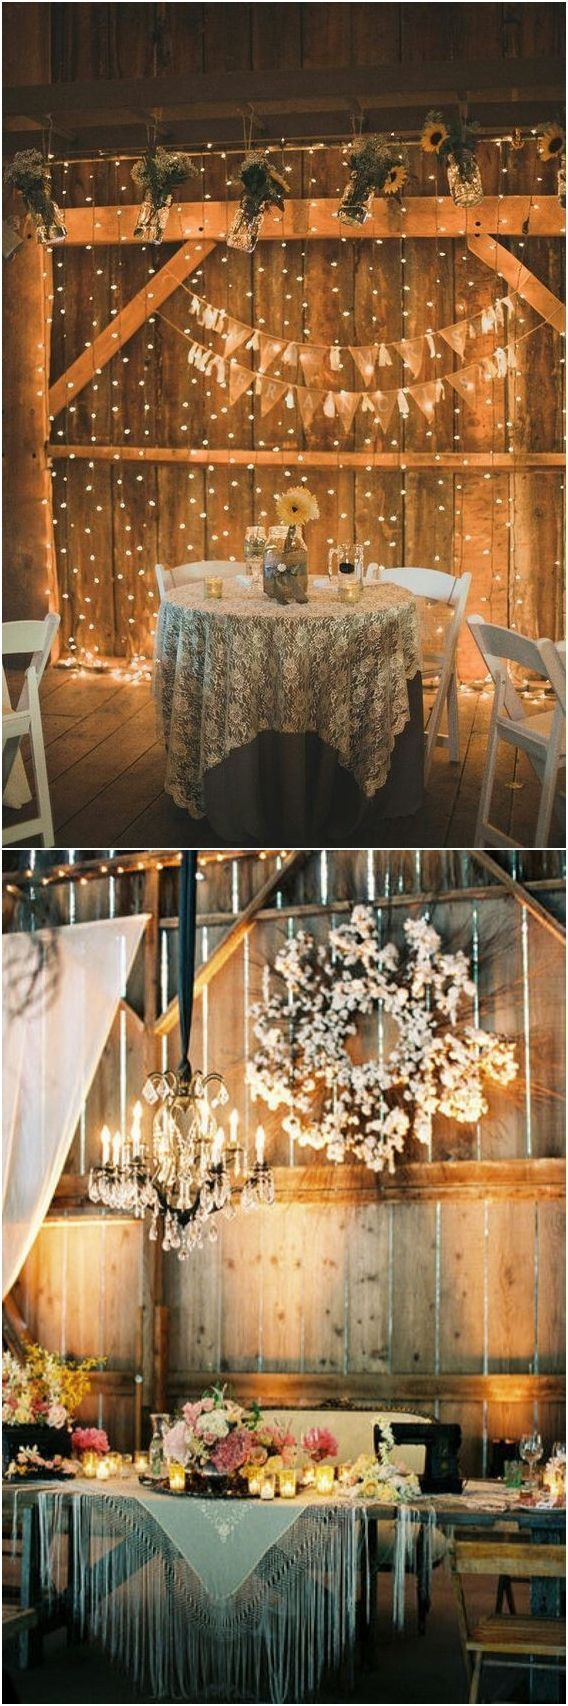 10 best Mexican Home and Party Decor images on Pinterest | Mexican ...